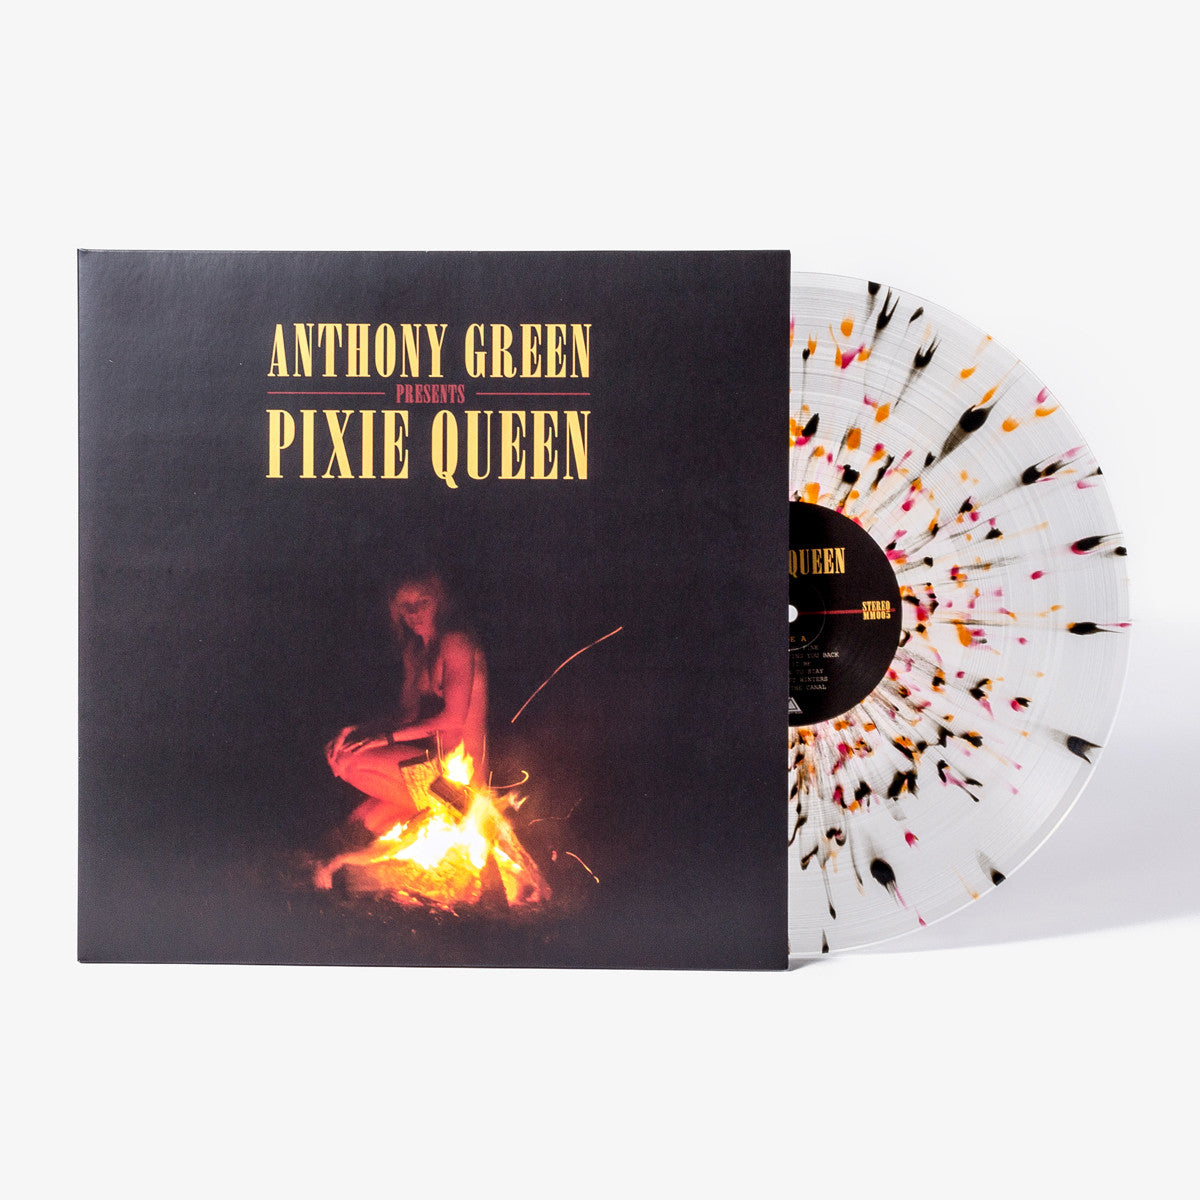 f3b4a9b3ee5 ... Anthony Green - Pixie Queen Vinyl LP ...